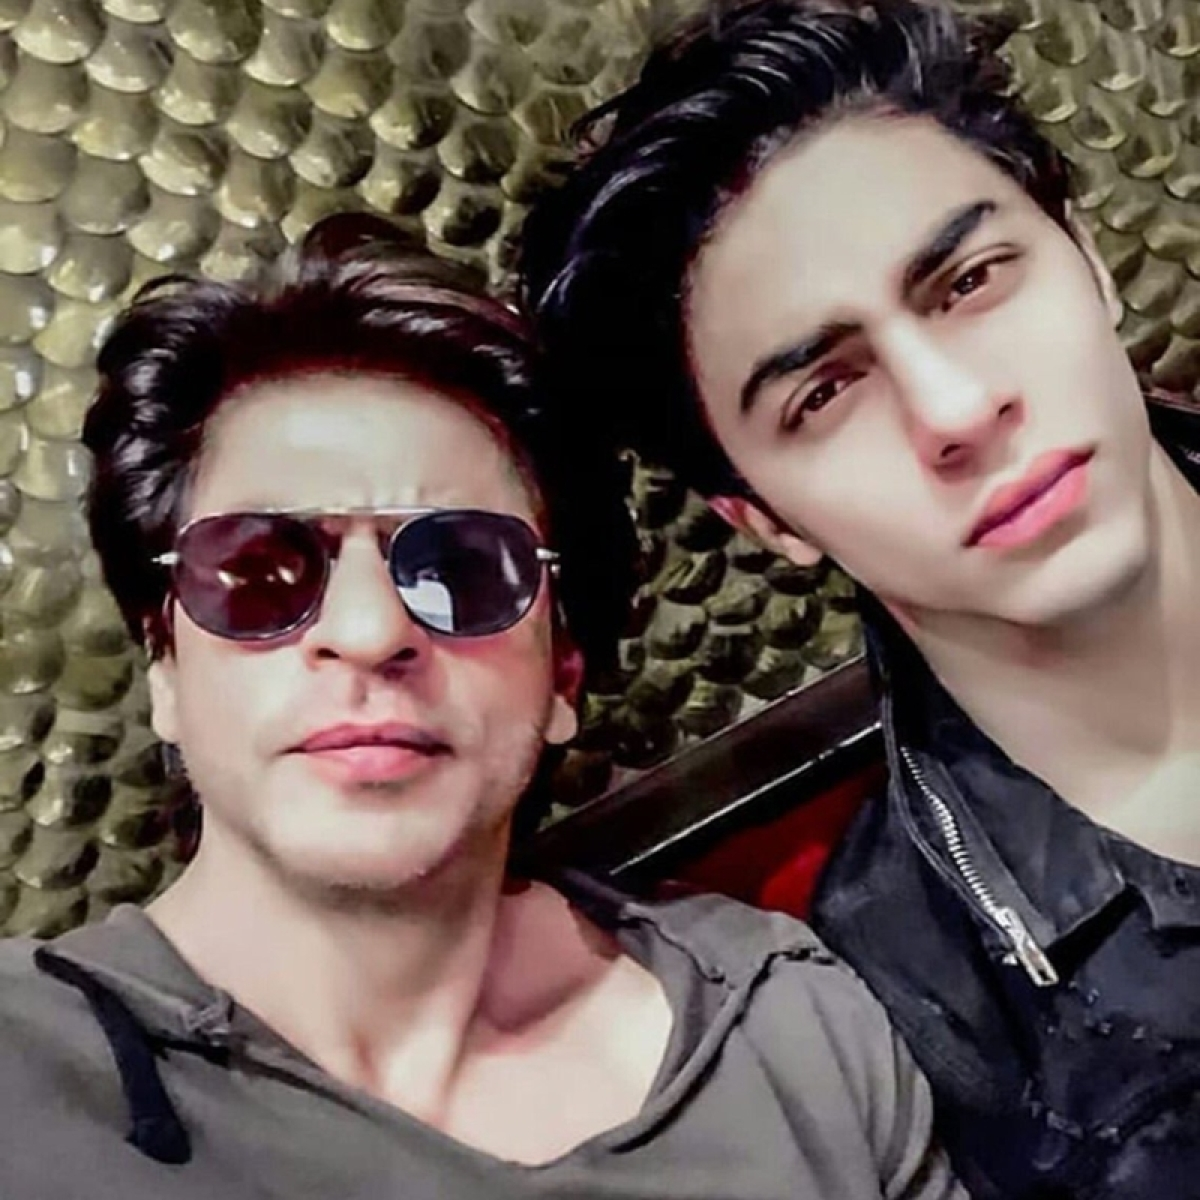 Shah Rukh Khan imparts wisdom to Aryan about being a true king